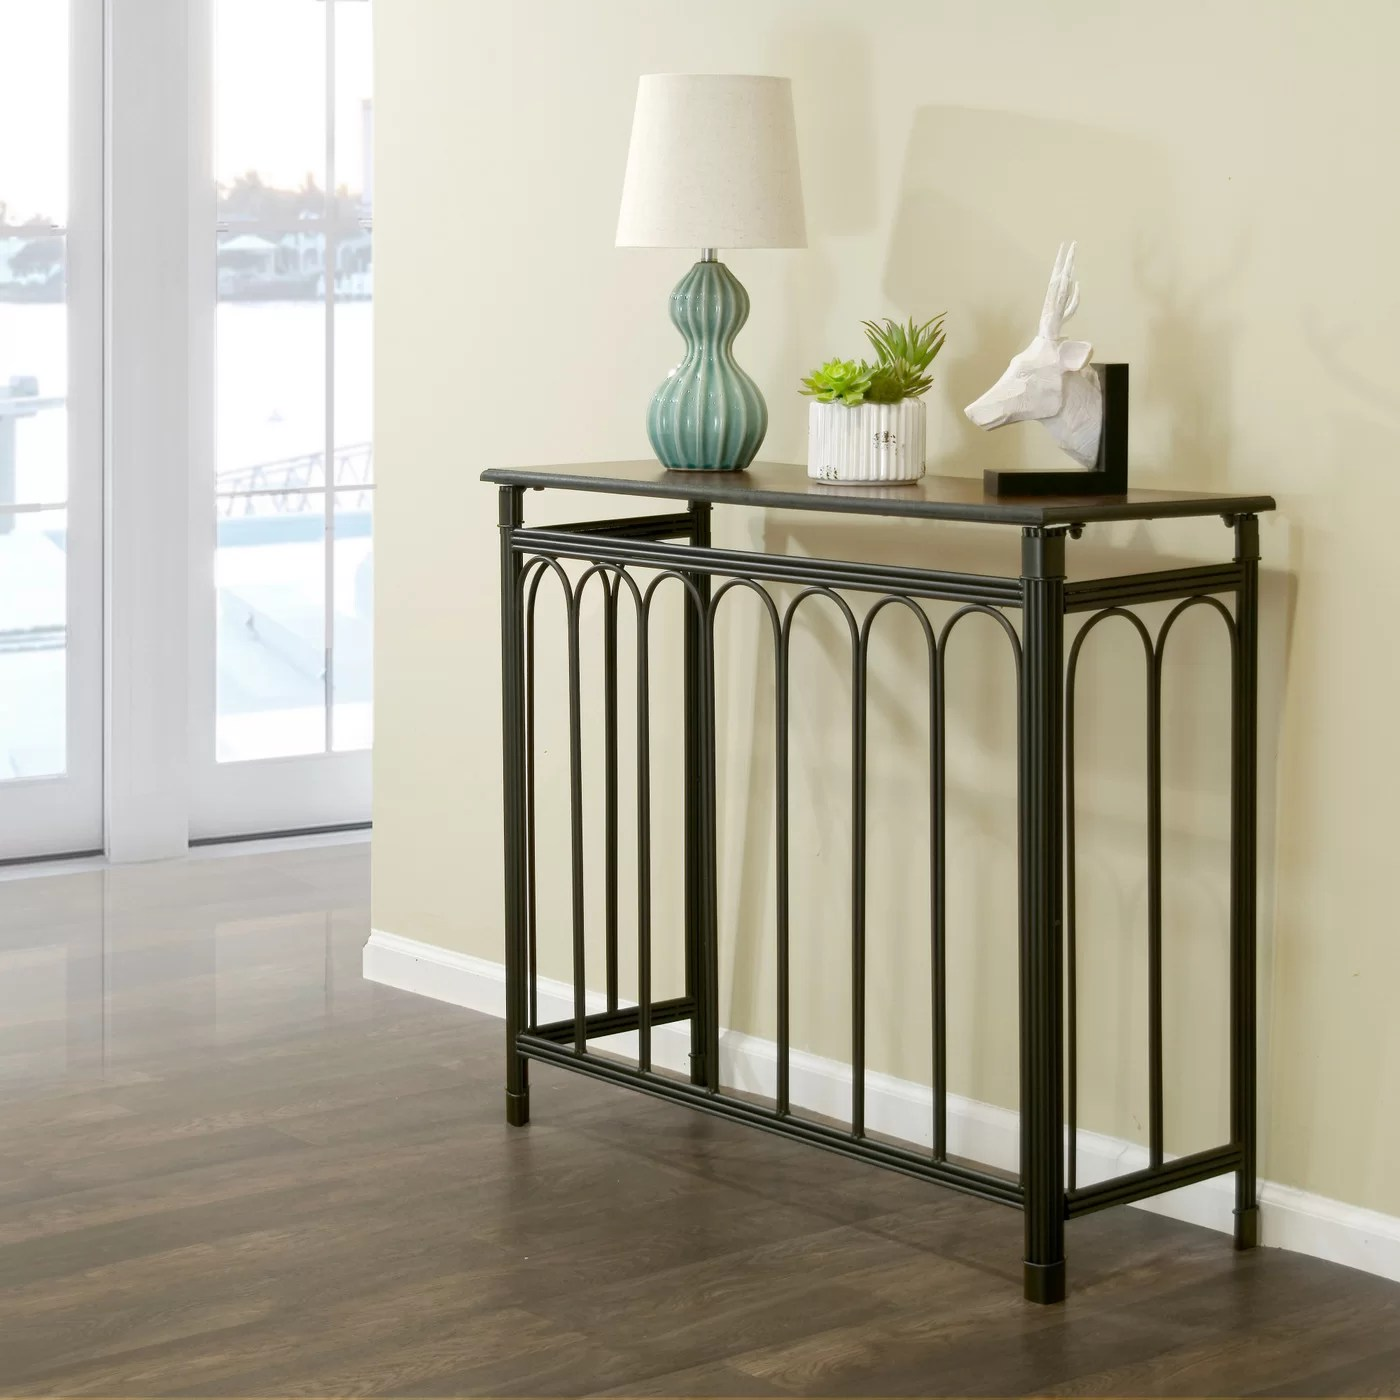 Glamour Home Decor Glamour Home Decor Adabella Console Table Wayfair